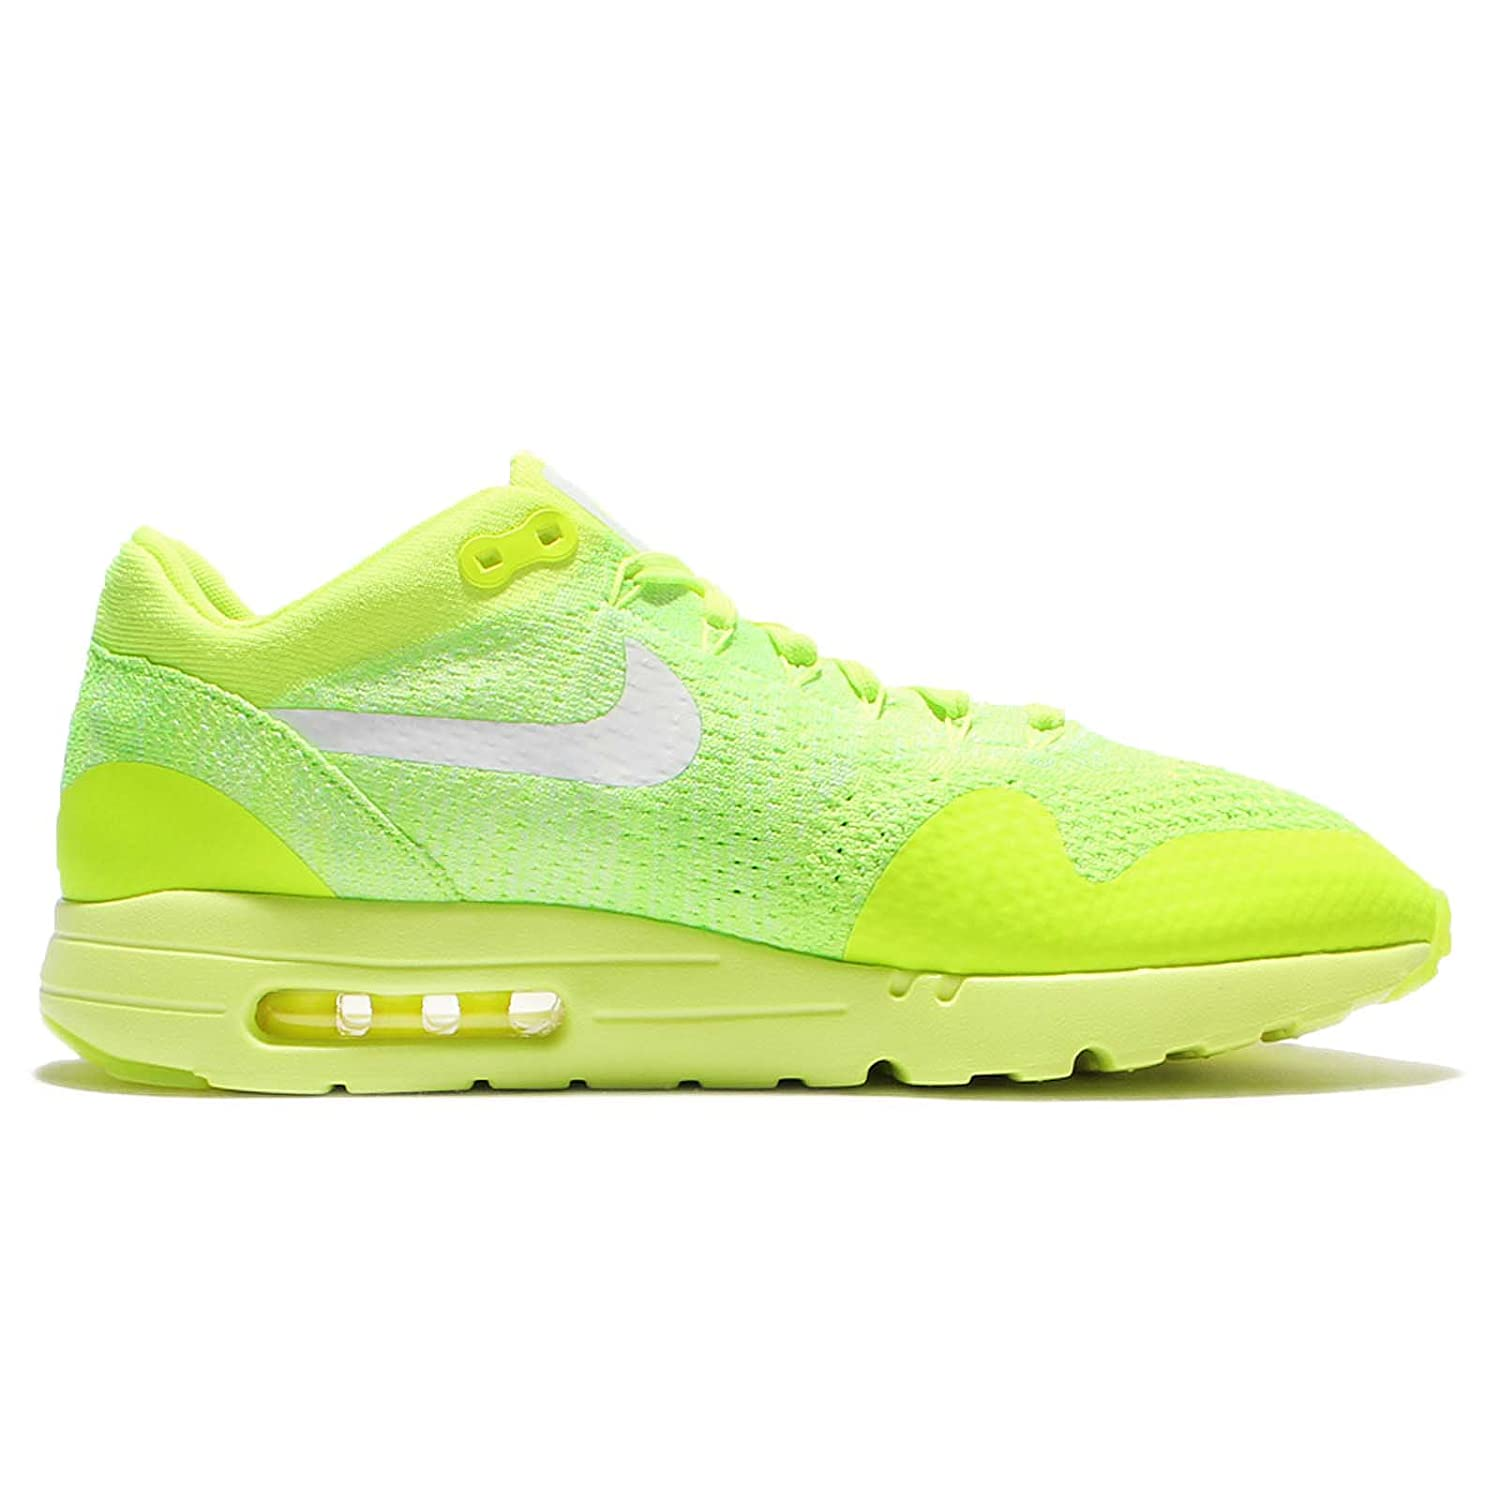 new photos bff77 f0496 Amazon.com   Nike Men s Air Max 1 Ultra Flyknit, VOLT WHITE-ELECTRIC GREEN,  13 M US   Athletic